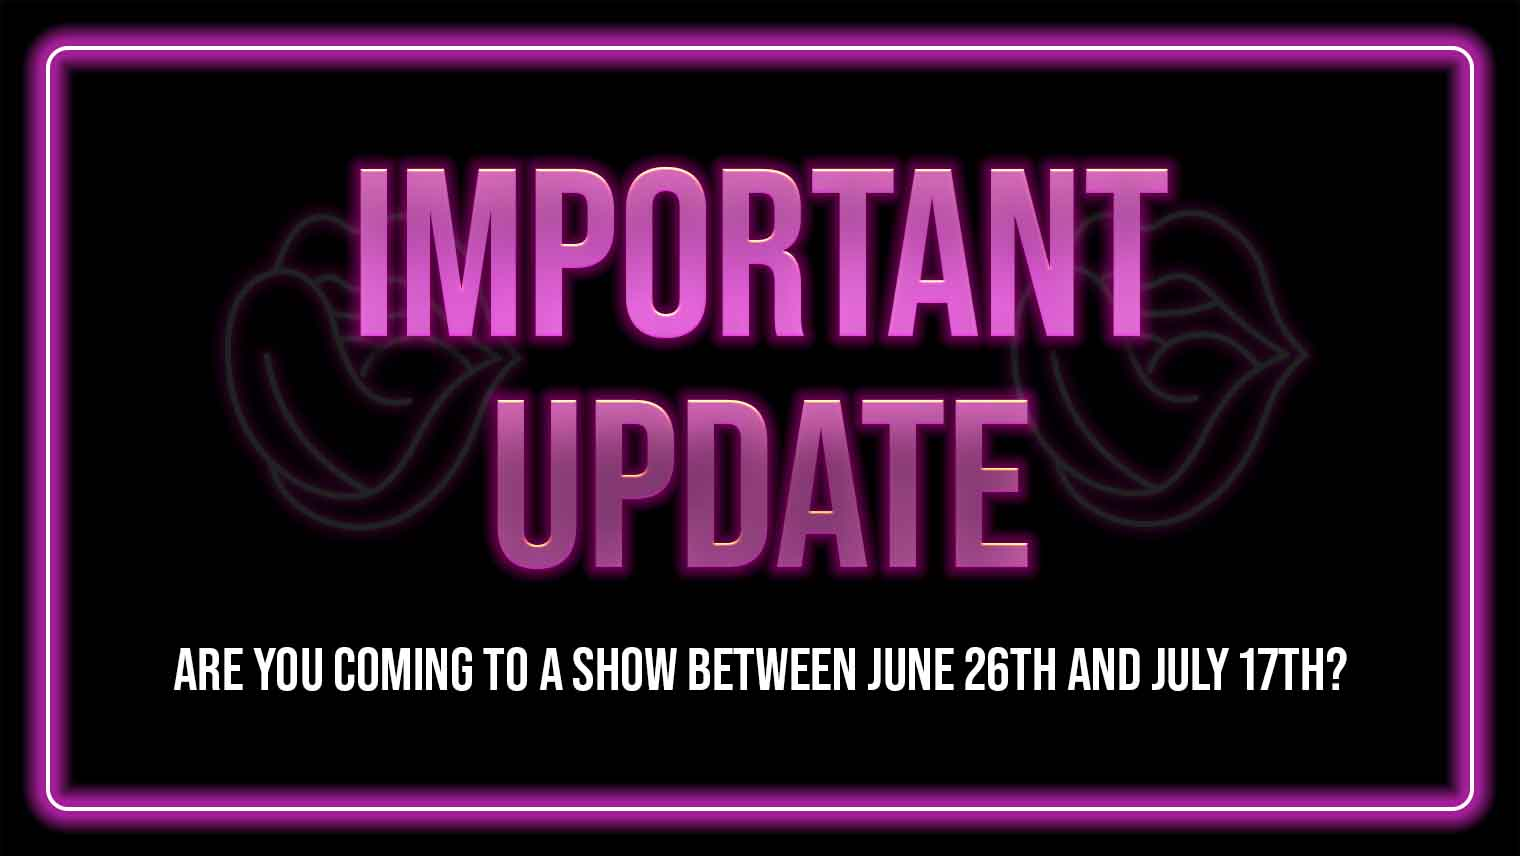 Male Strippers | Please read if you are coming to a show in the next two weeks!